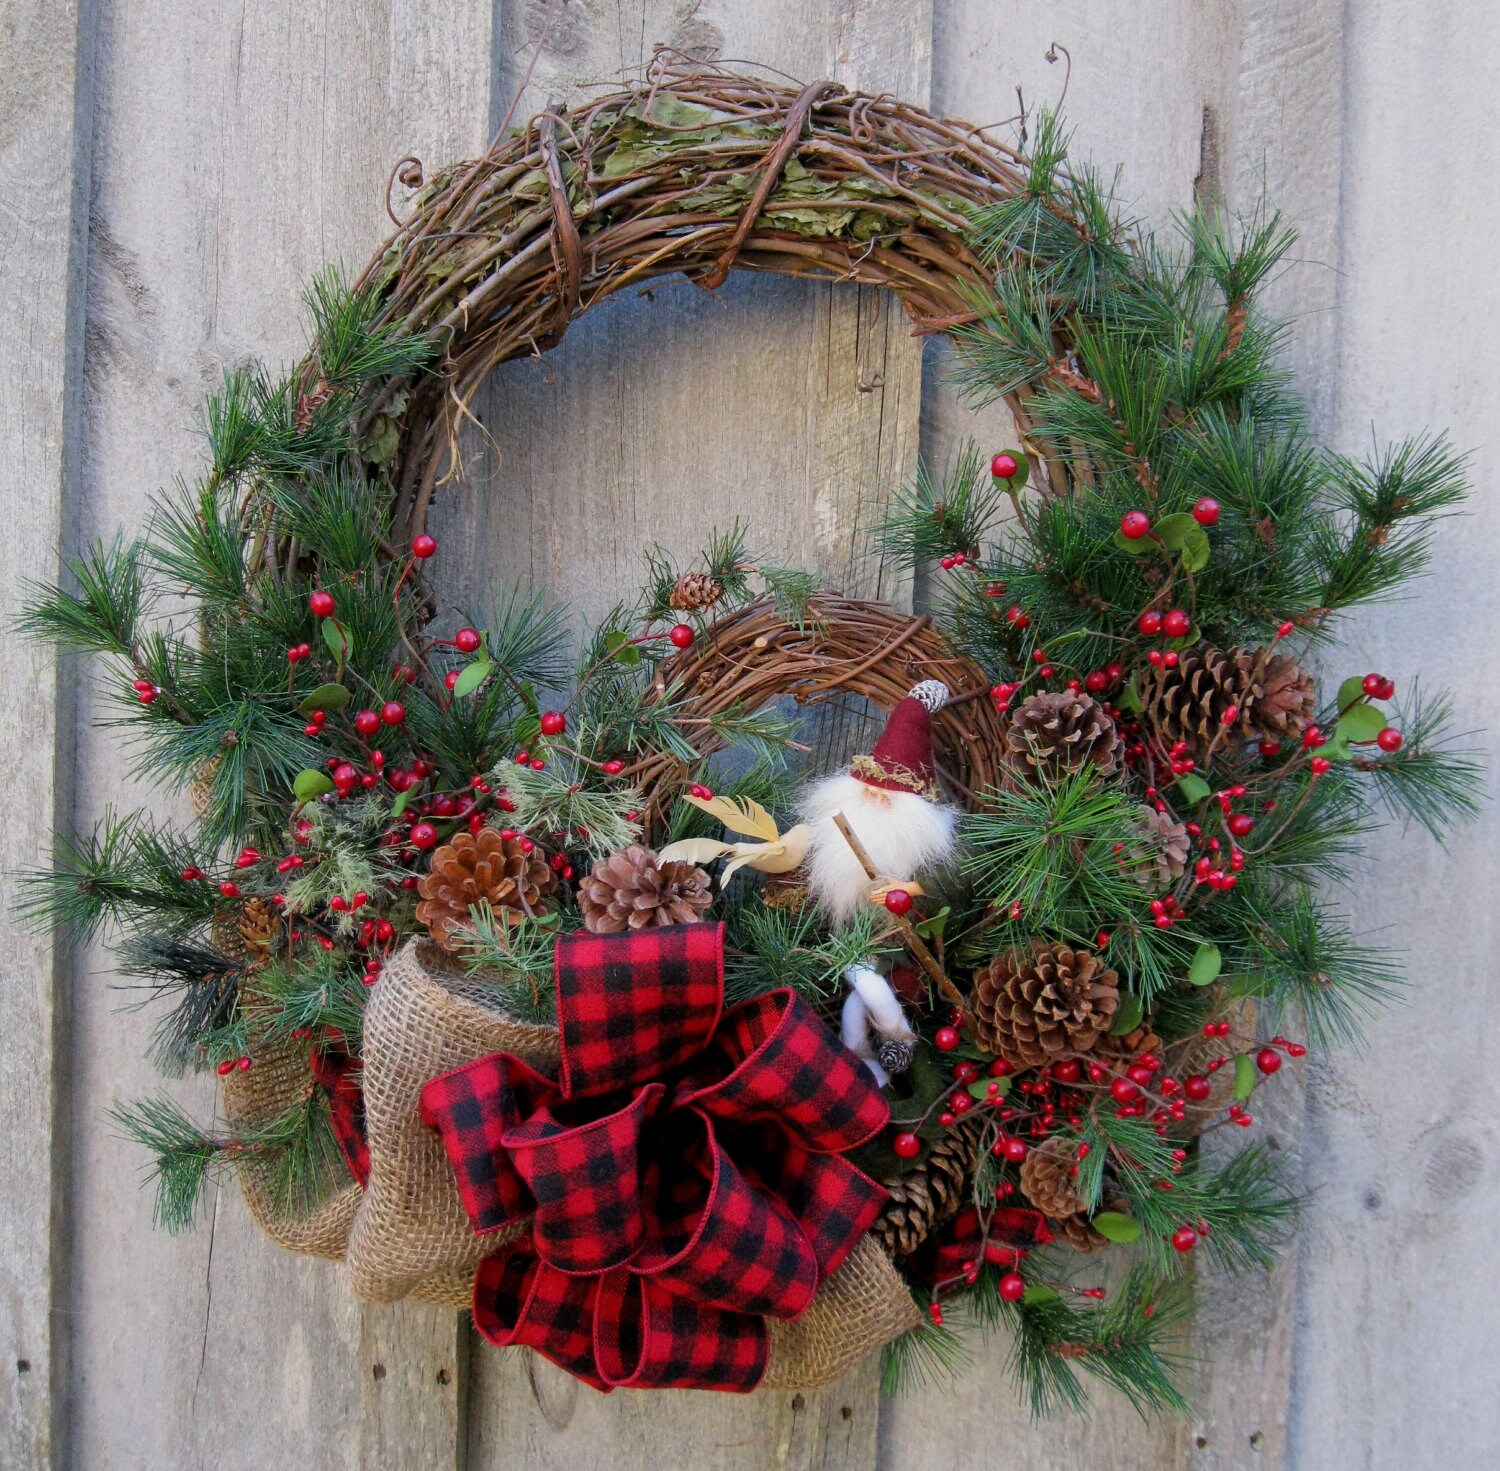 Christmas wreath holiday d cor woodland christmas rustic Christmas wreath decorations